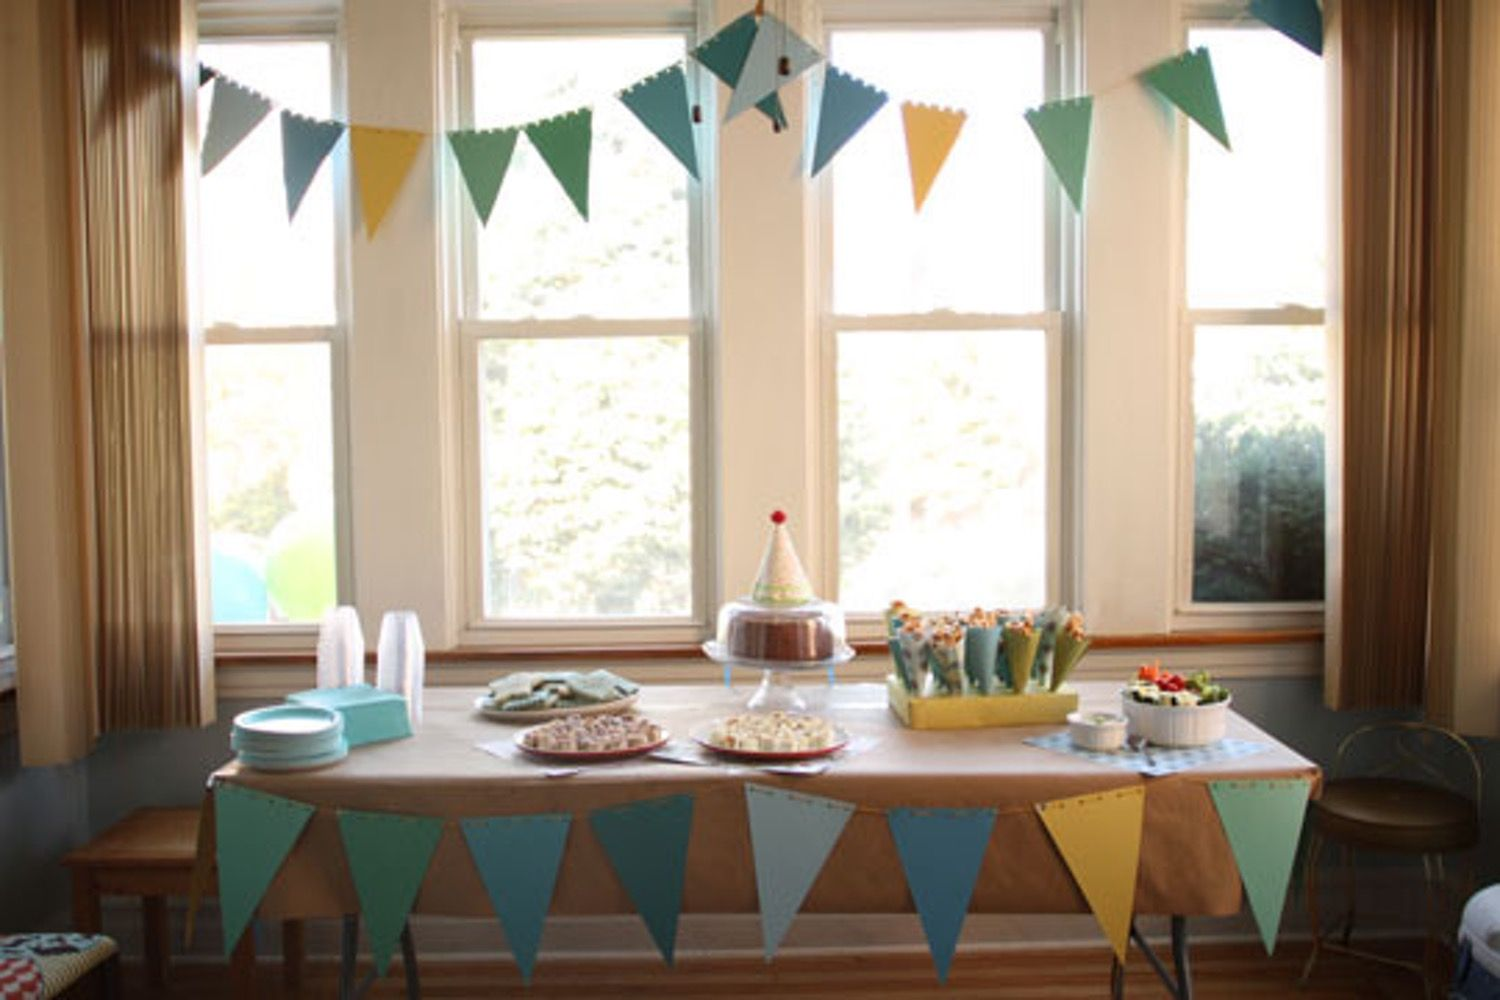 Best Kids Parties: A Simple First Birthday at Home